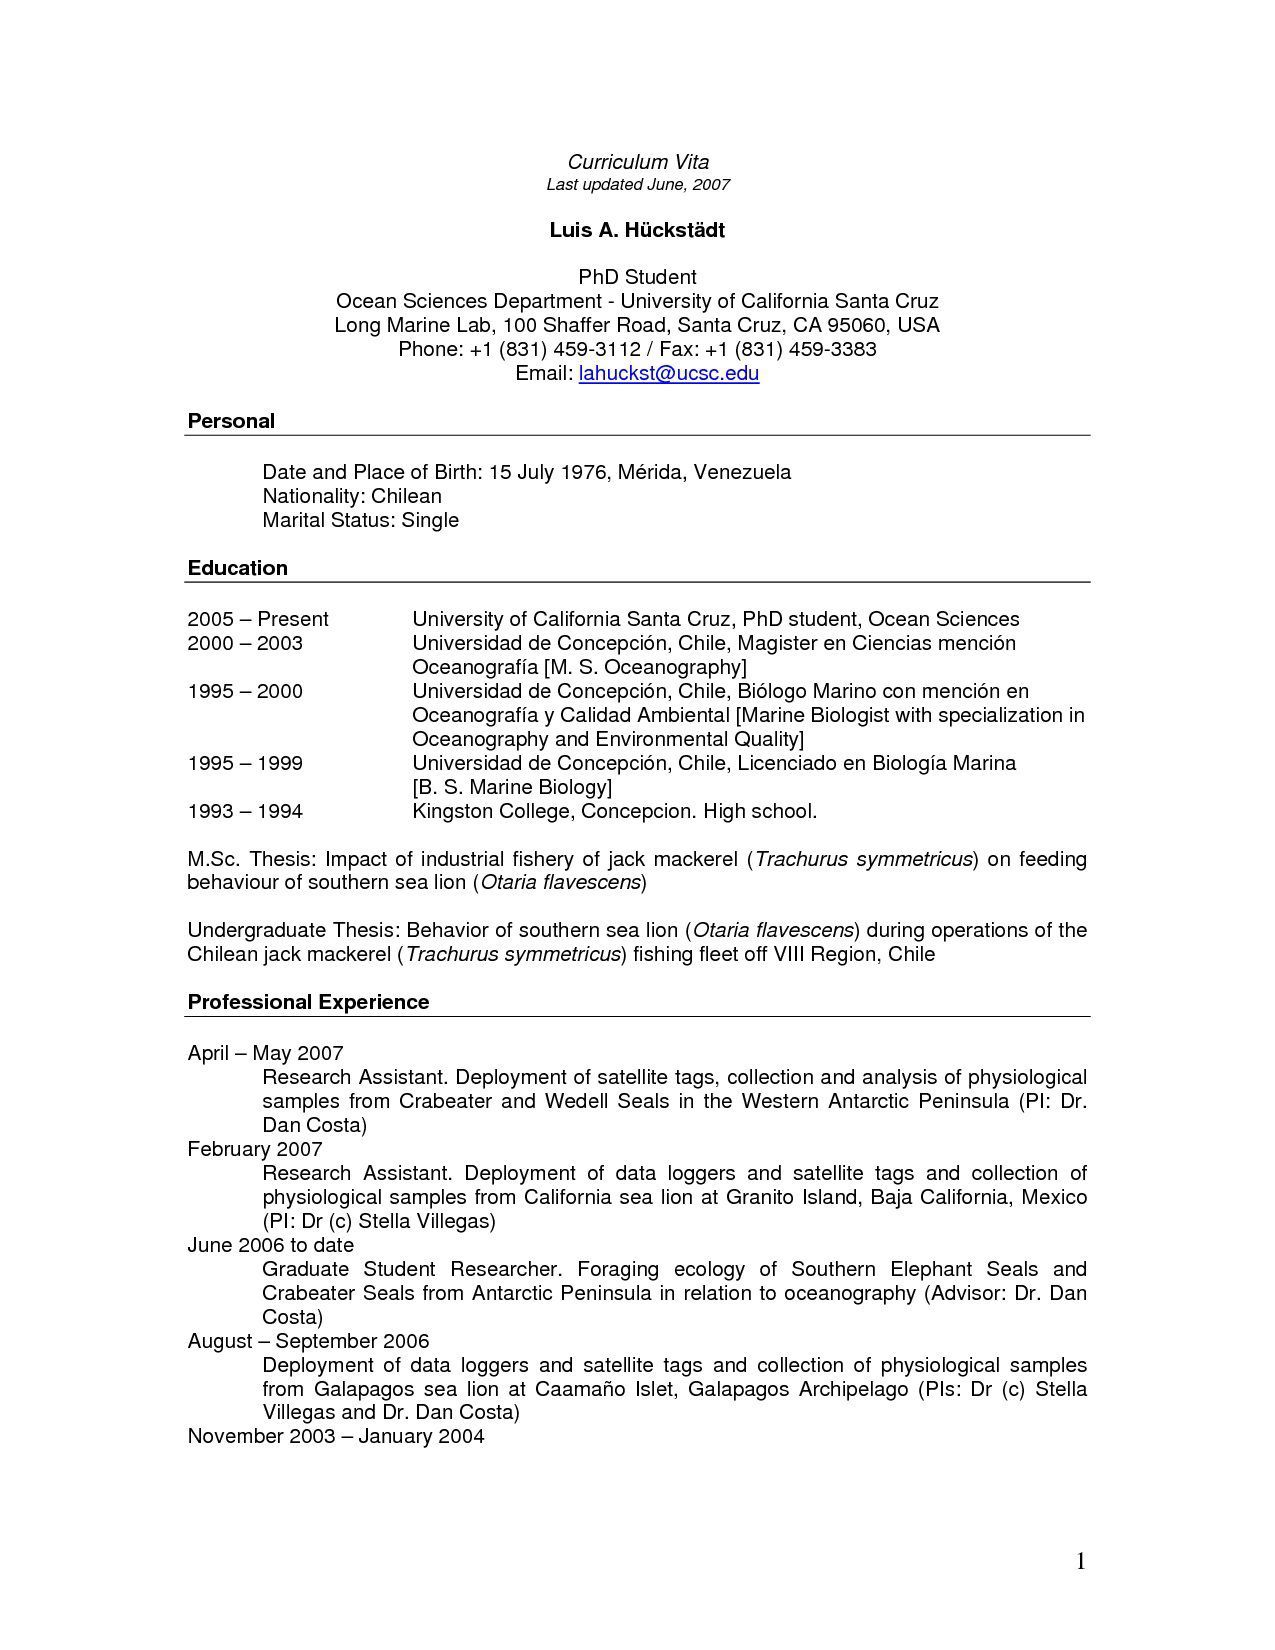 005 Remarkable Graduate School Curriculum Vitae Template Photo  For Application Resume FormatFull